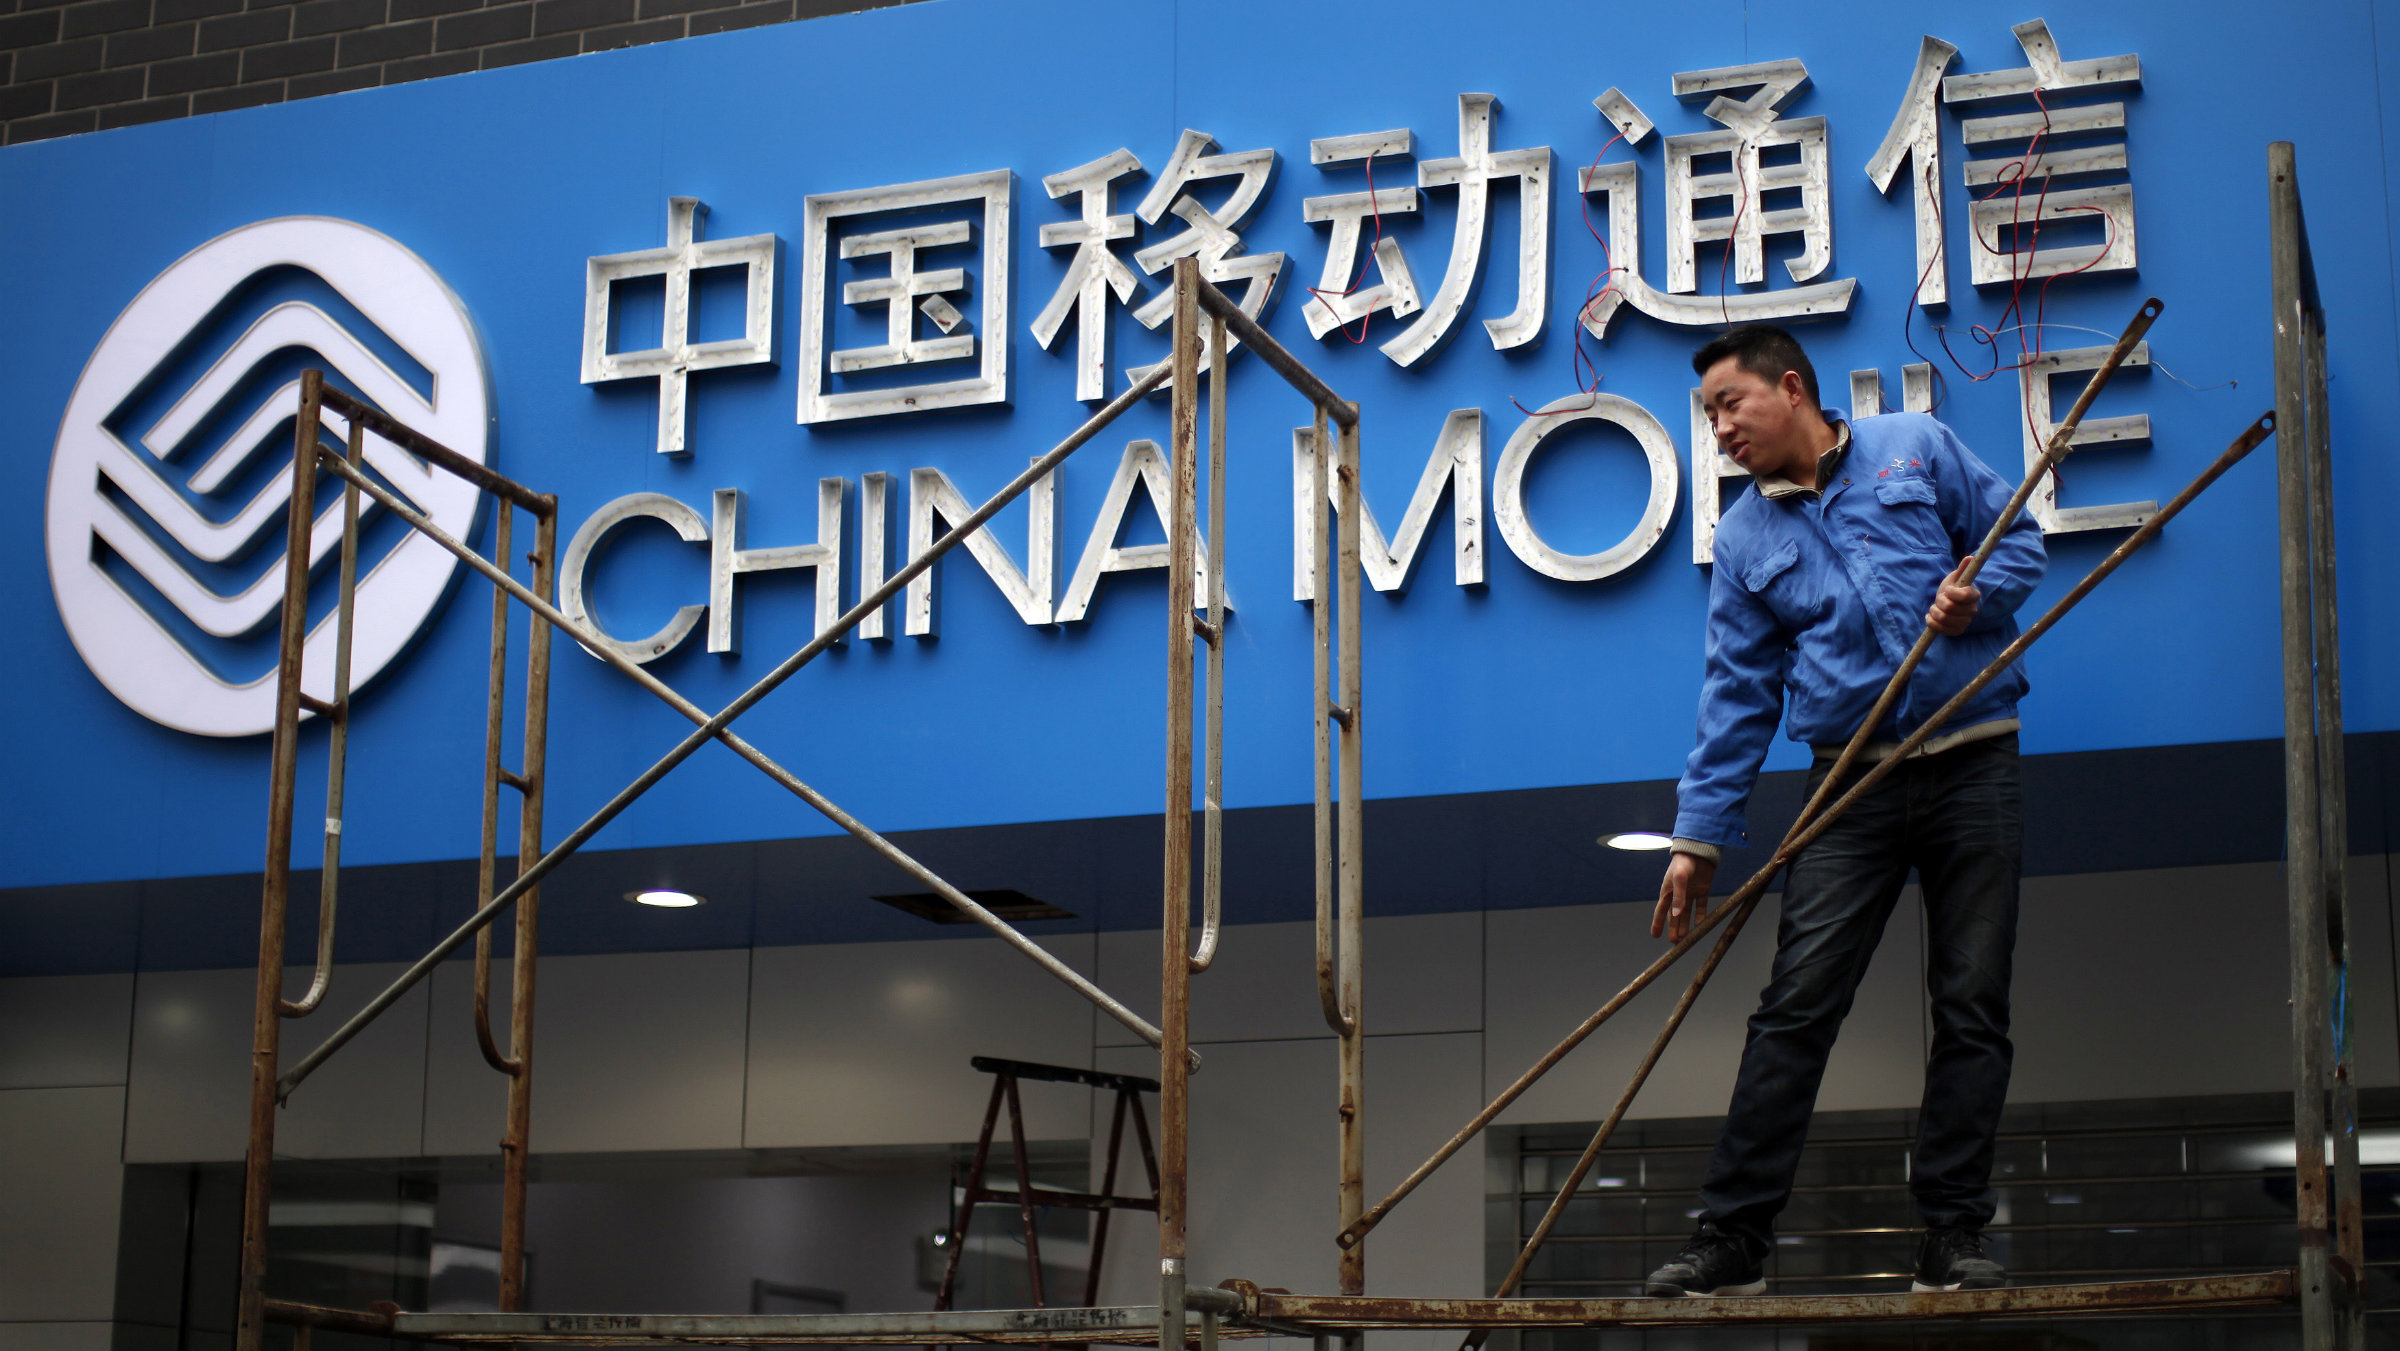 China Mobile thinks the iPhone will help to repair its image among customers.